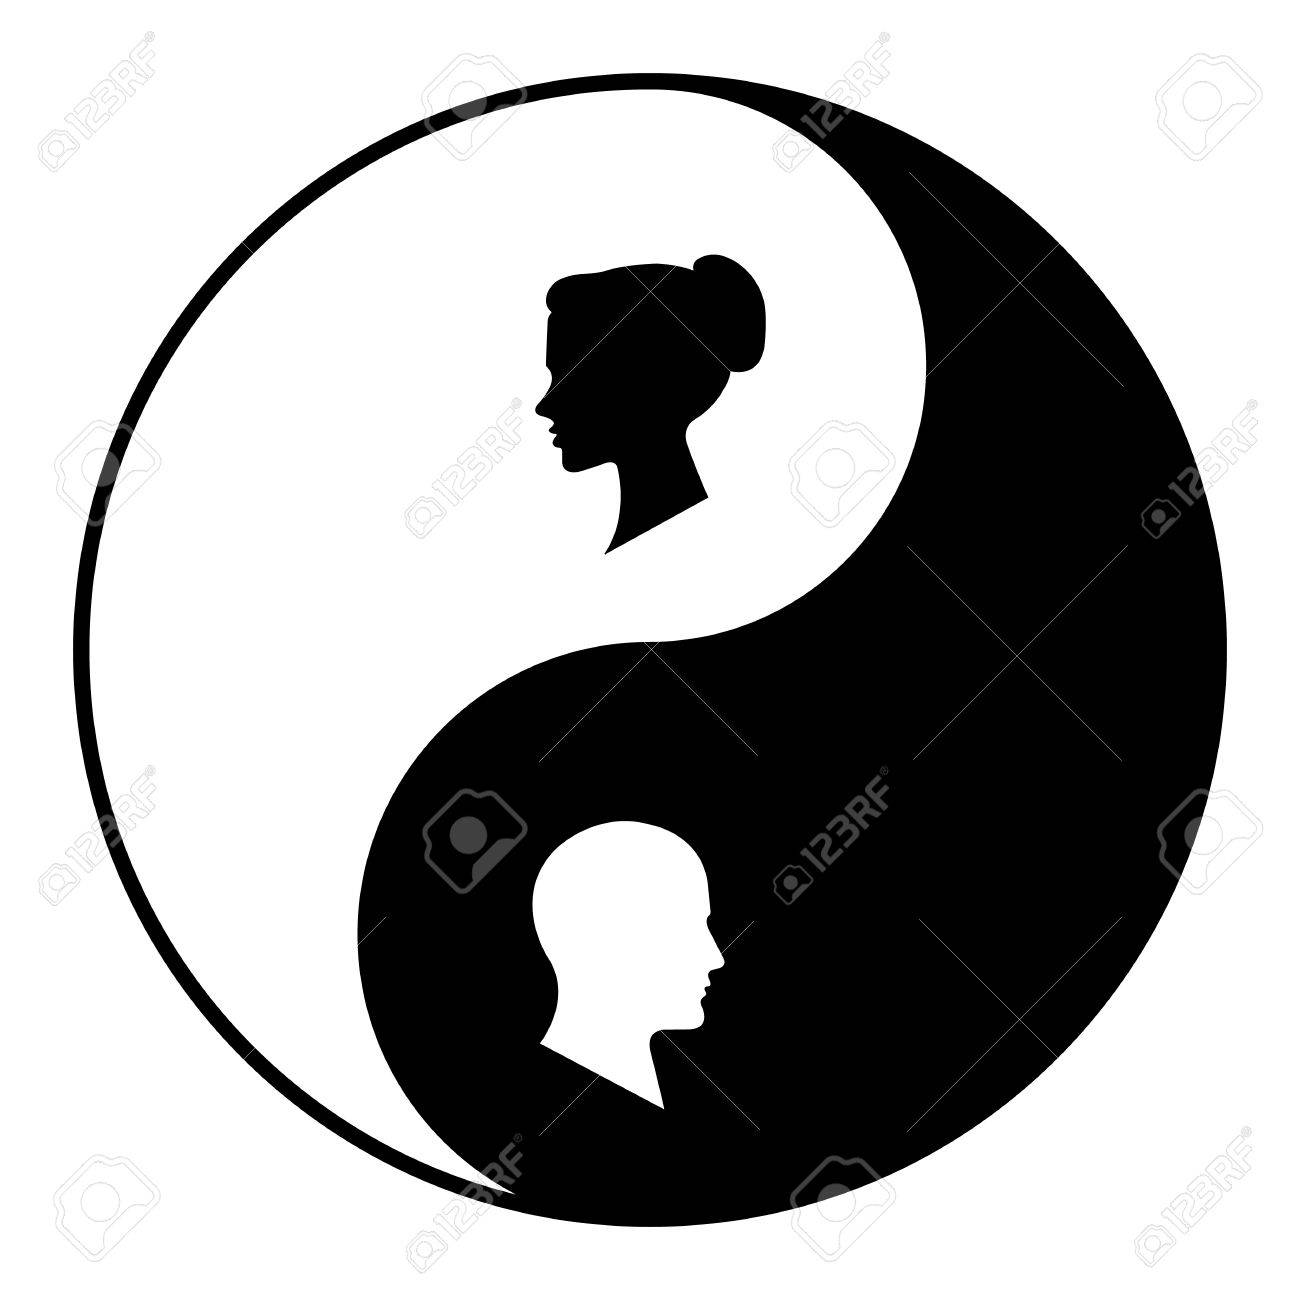 Yin yang symbol of harmony and balance between male and female yin yang symbol of harmony and balance between male and female stock vector 77158052 biocorpaavc